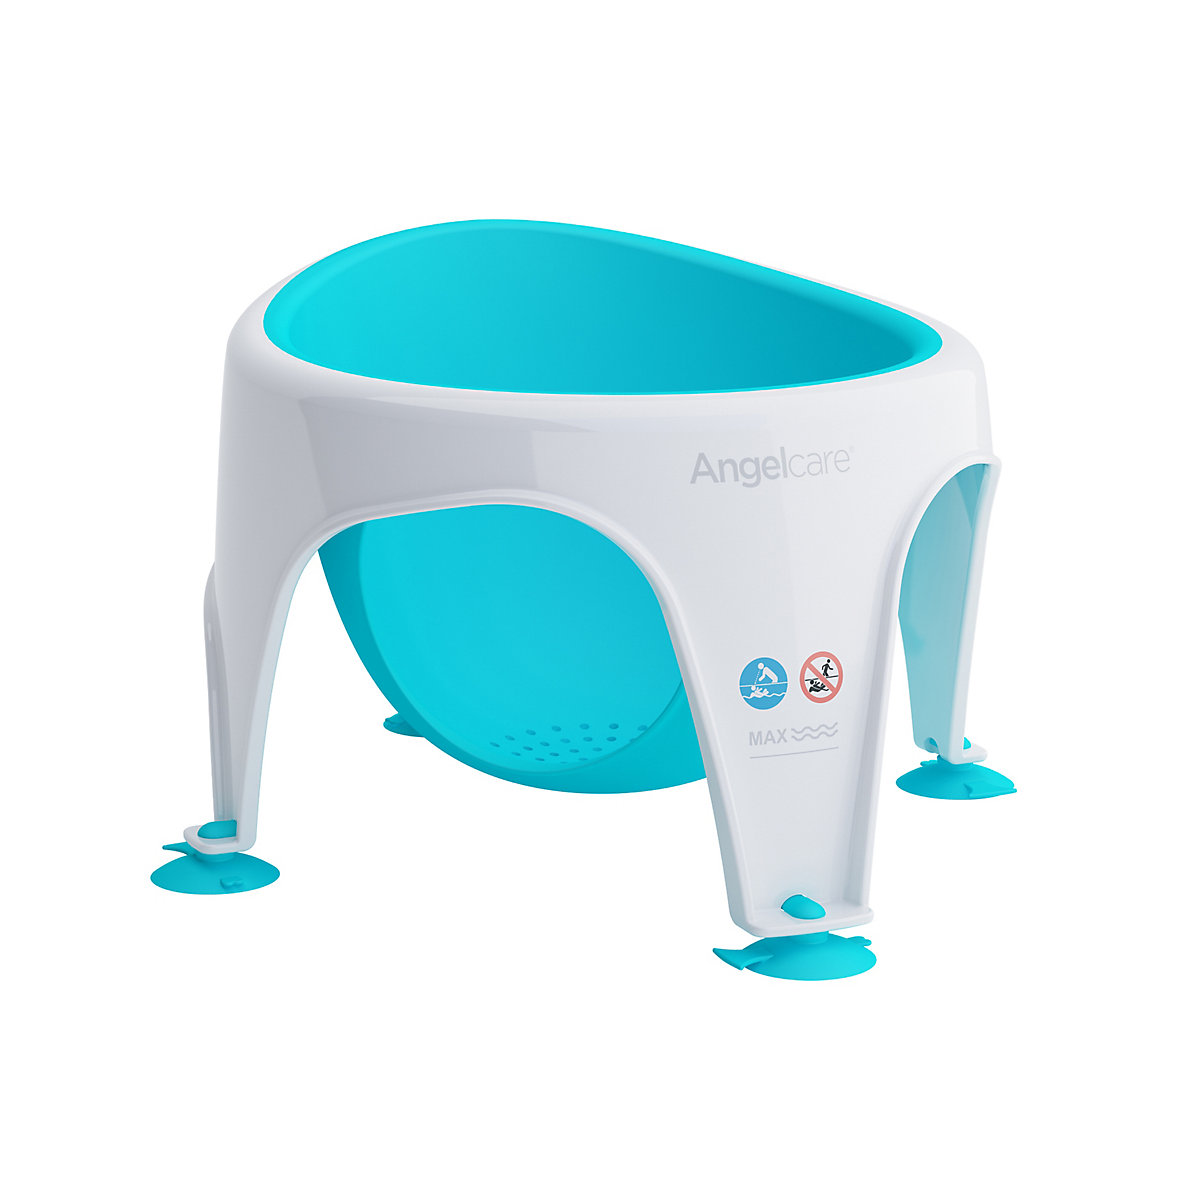 Angelcare soft-touch bath seat - aqua